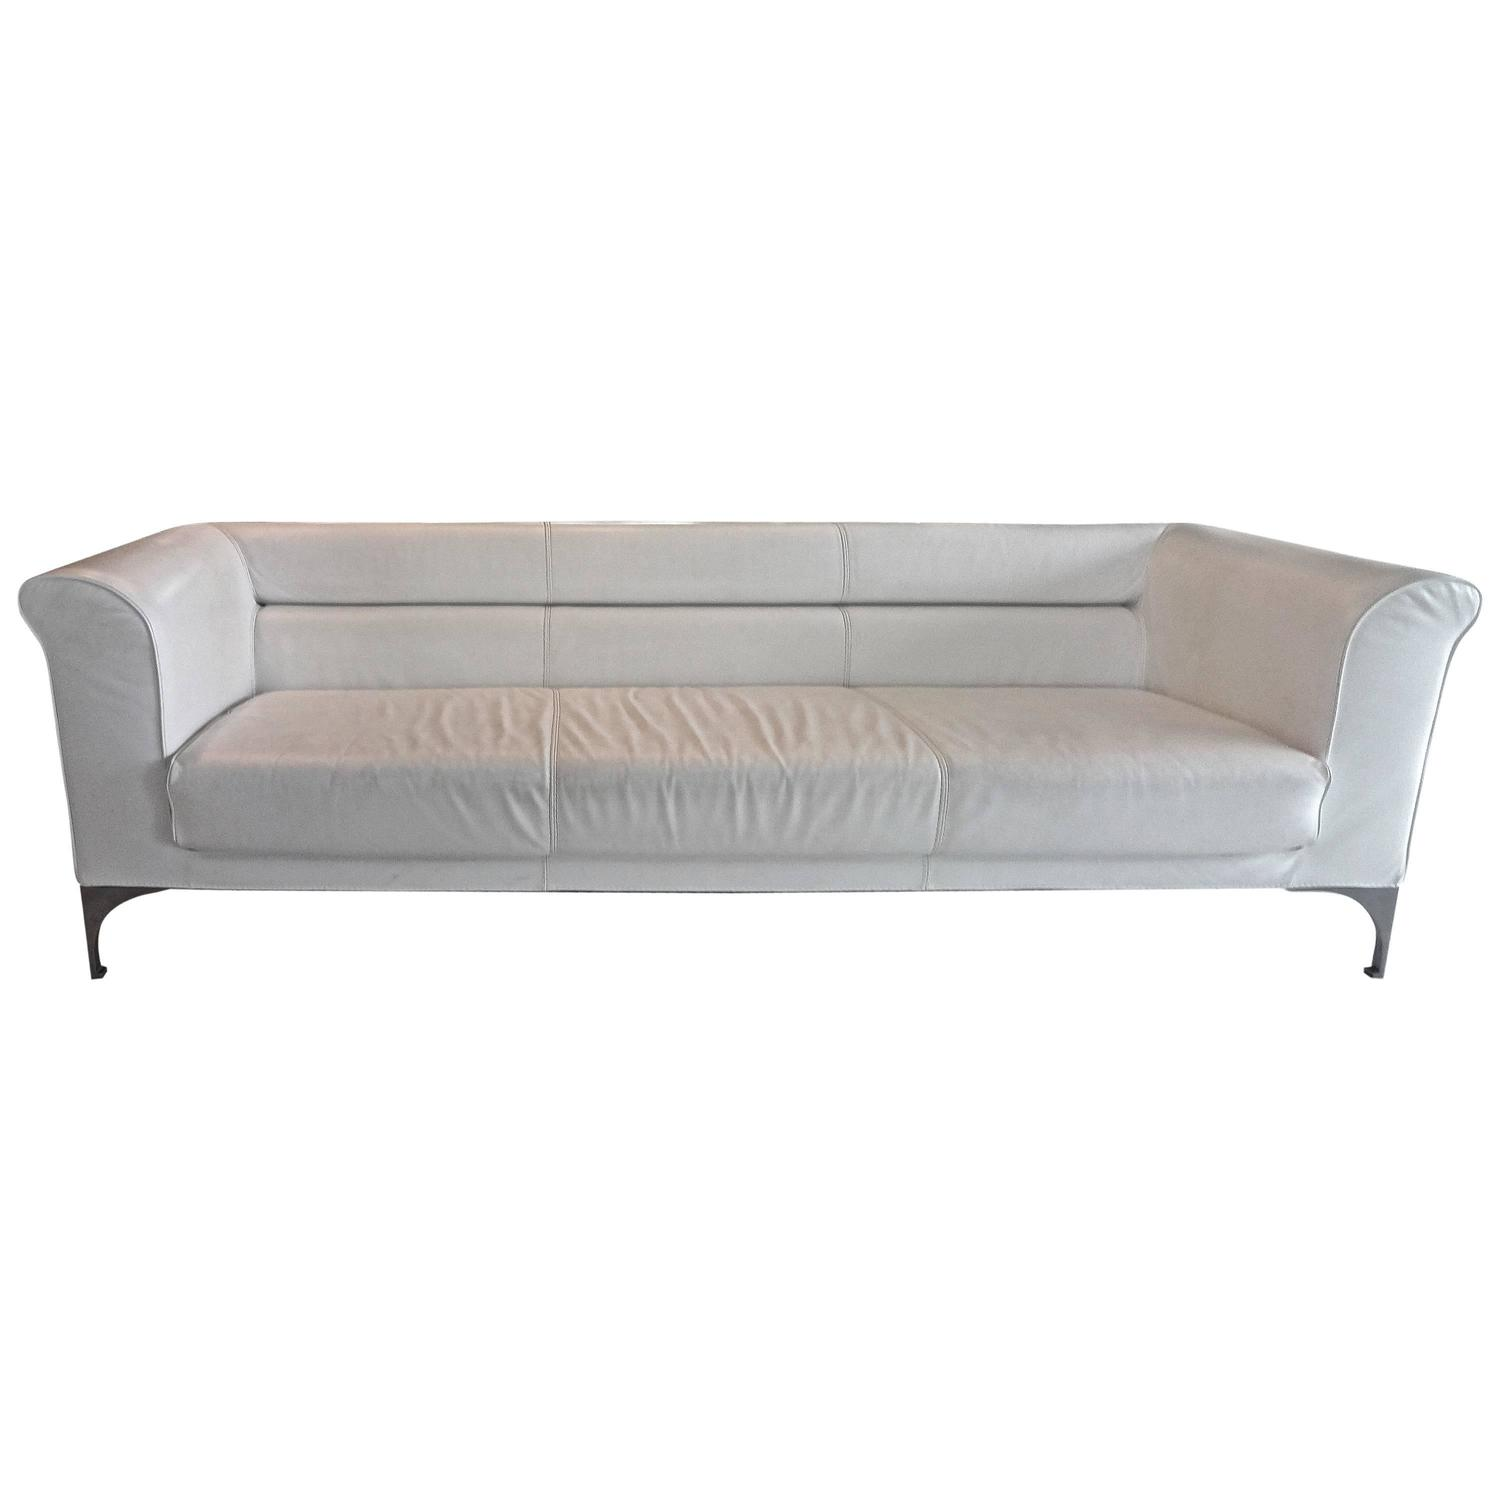 white leather chairs for sale ergonomic chair store roche bobois sofa at 1stdibs